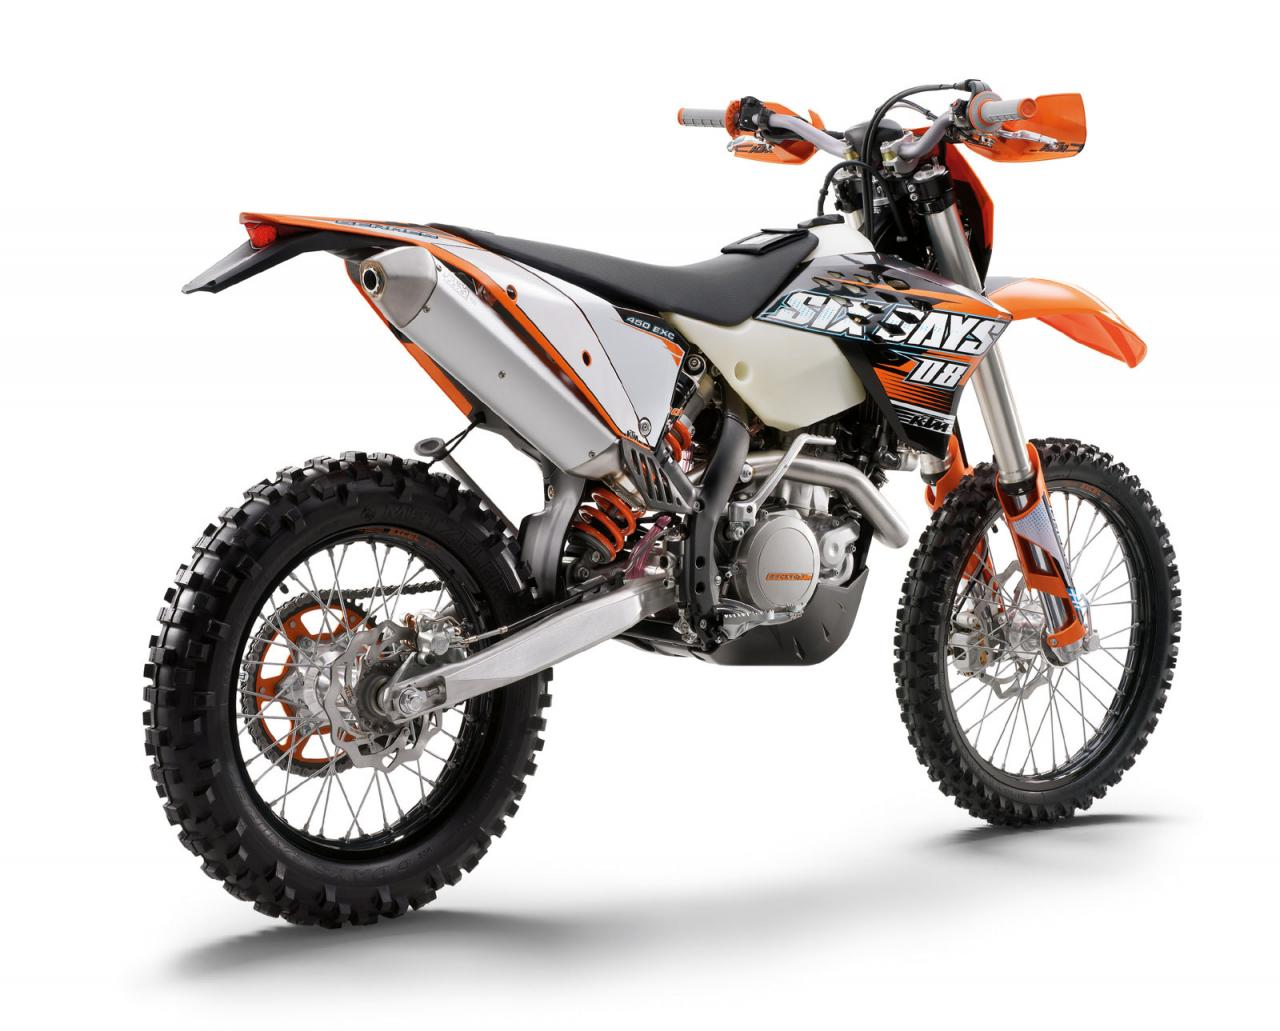 2009 ktm 300 exc six days moto zombdrive com. Black Bedroom Furniture Sets. Home Design Ideas